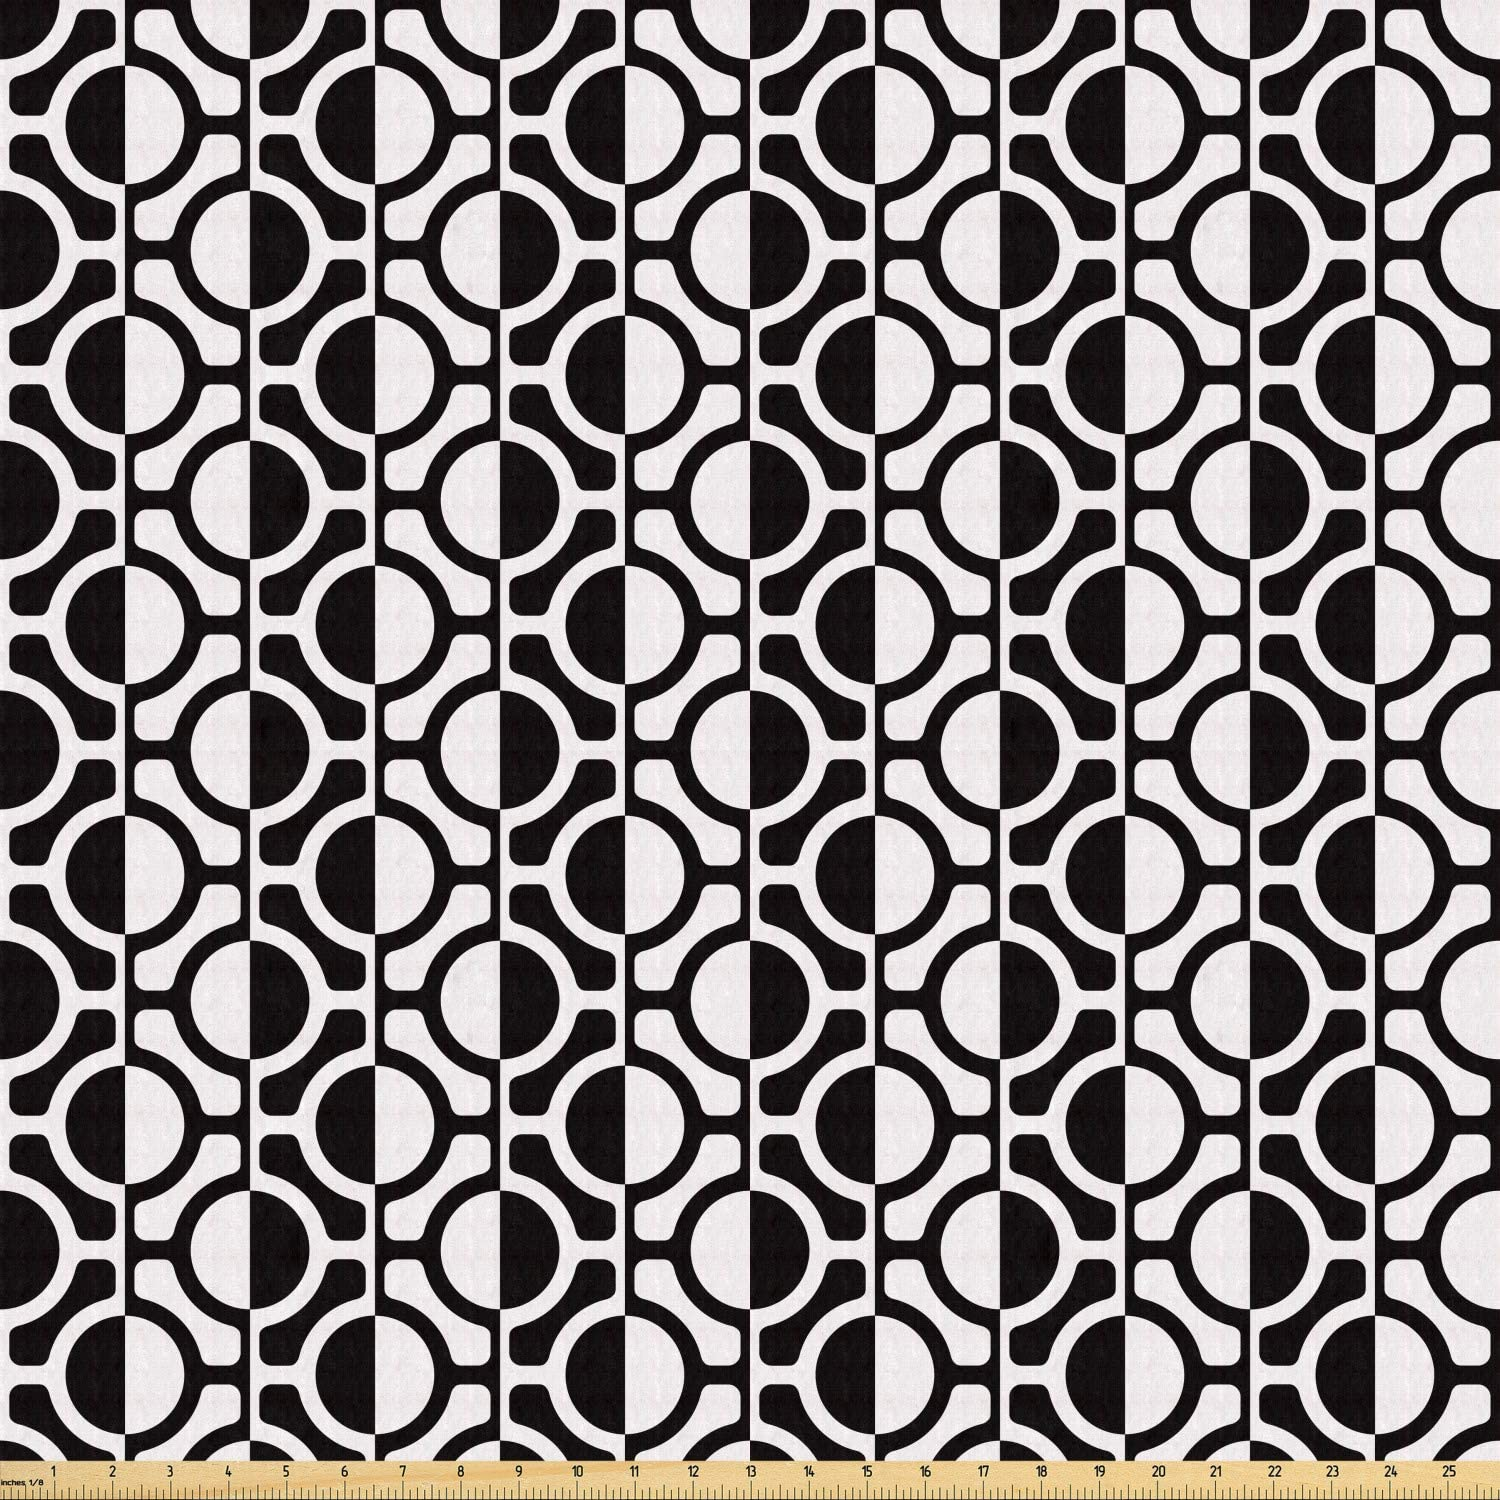 Ambesonne Black and White Fabric by The Yard, Lattice Pattern with Geometric Circles and Lines Abstract Monochrome Grid, Stretch Knit Fabric for Clothing Sewing and Arts Crafts, 1 Yard, Black White